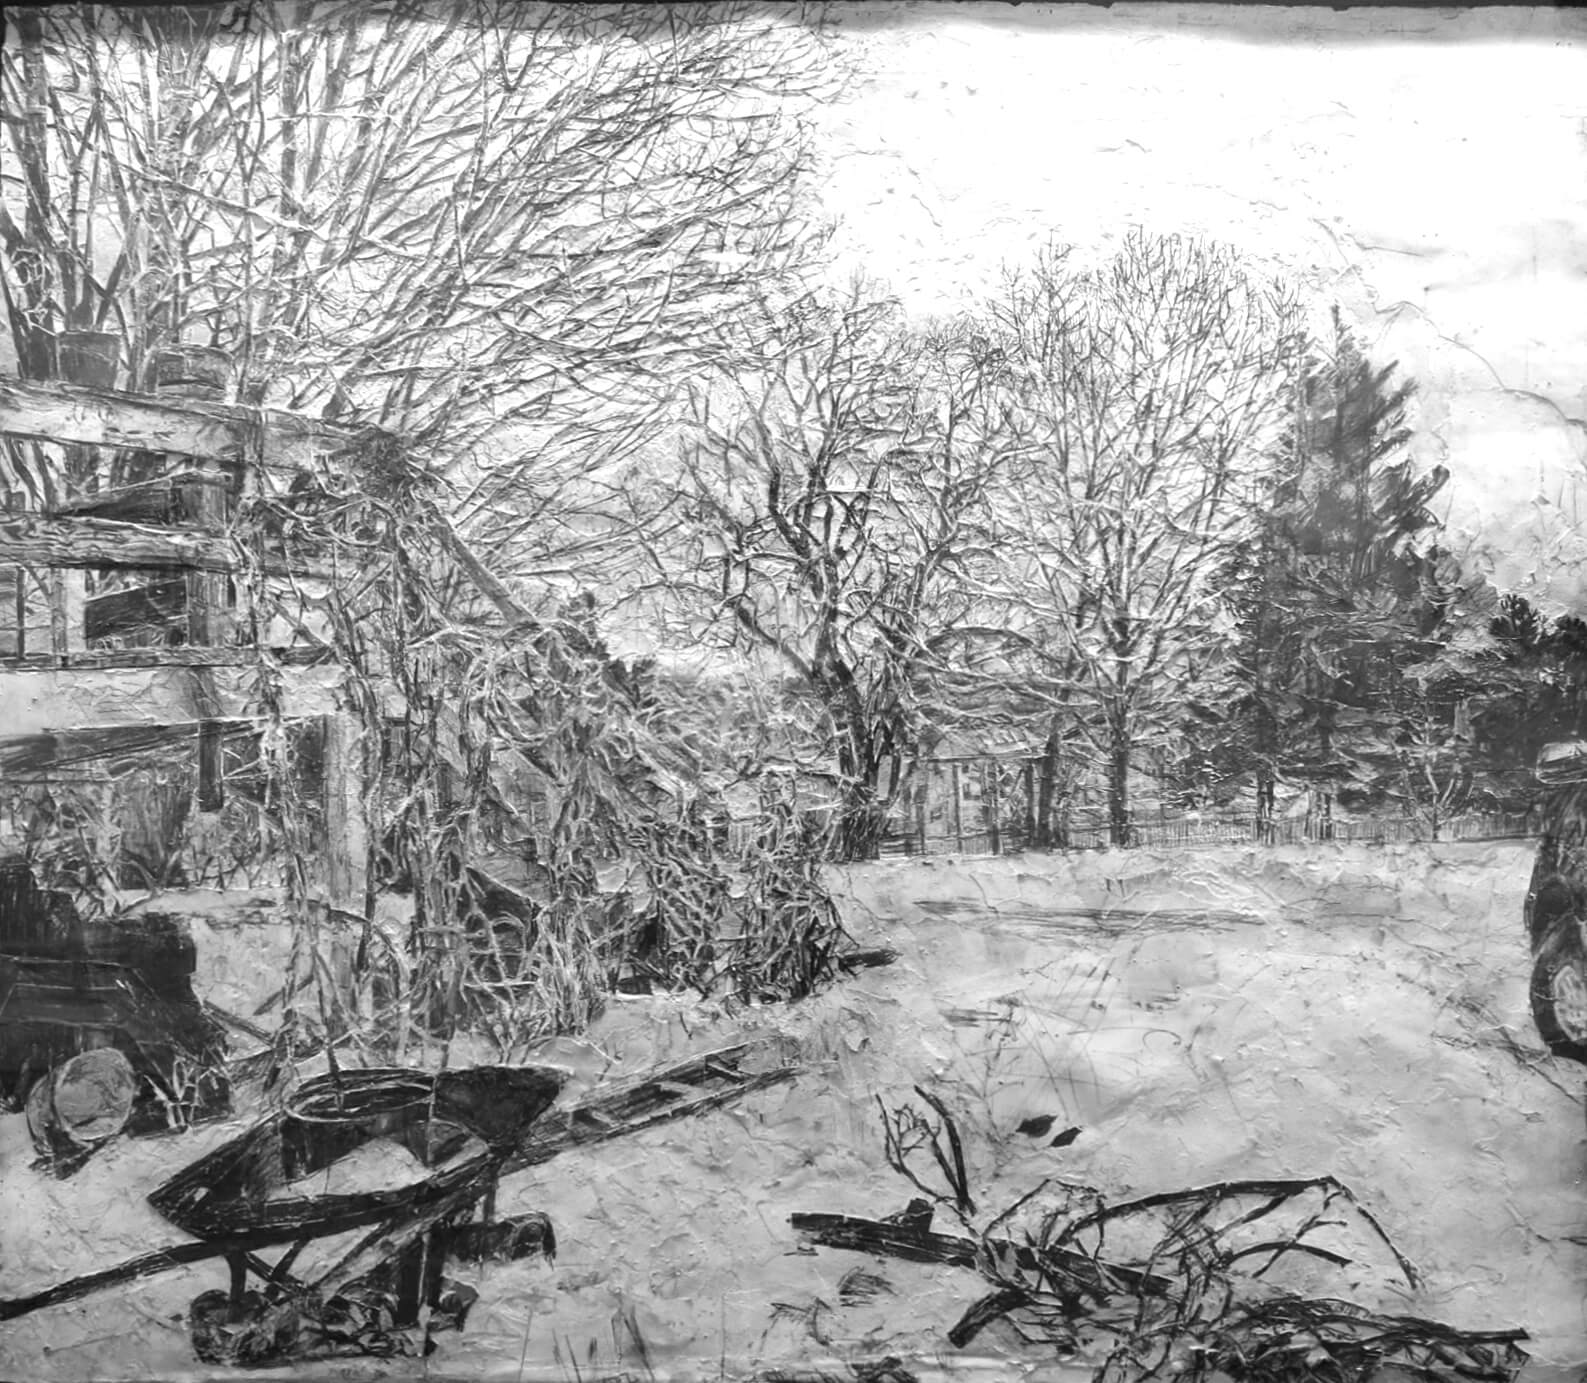 Stanley Lewis, View from Studio Window, 2003-4, graphite on paper, approx. 45 x 51 inches (From the Louis-Dreyfus Family Collection, courtesy of The William Louis-Dreyfus Foundation Inc.)